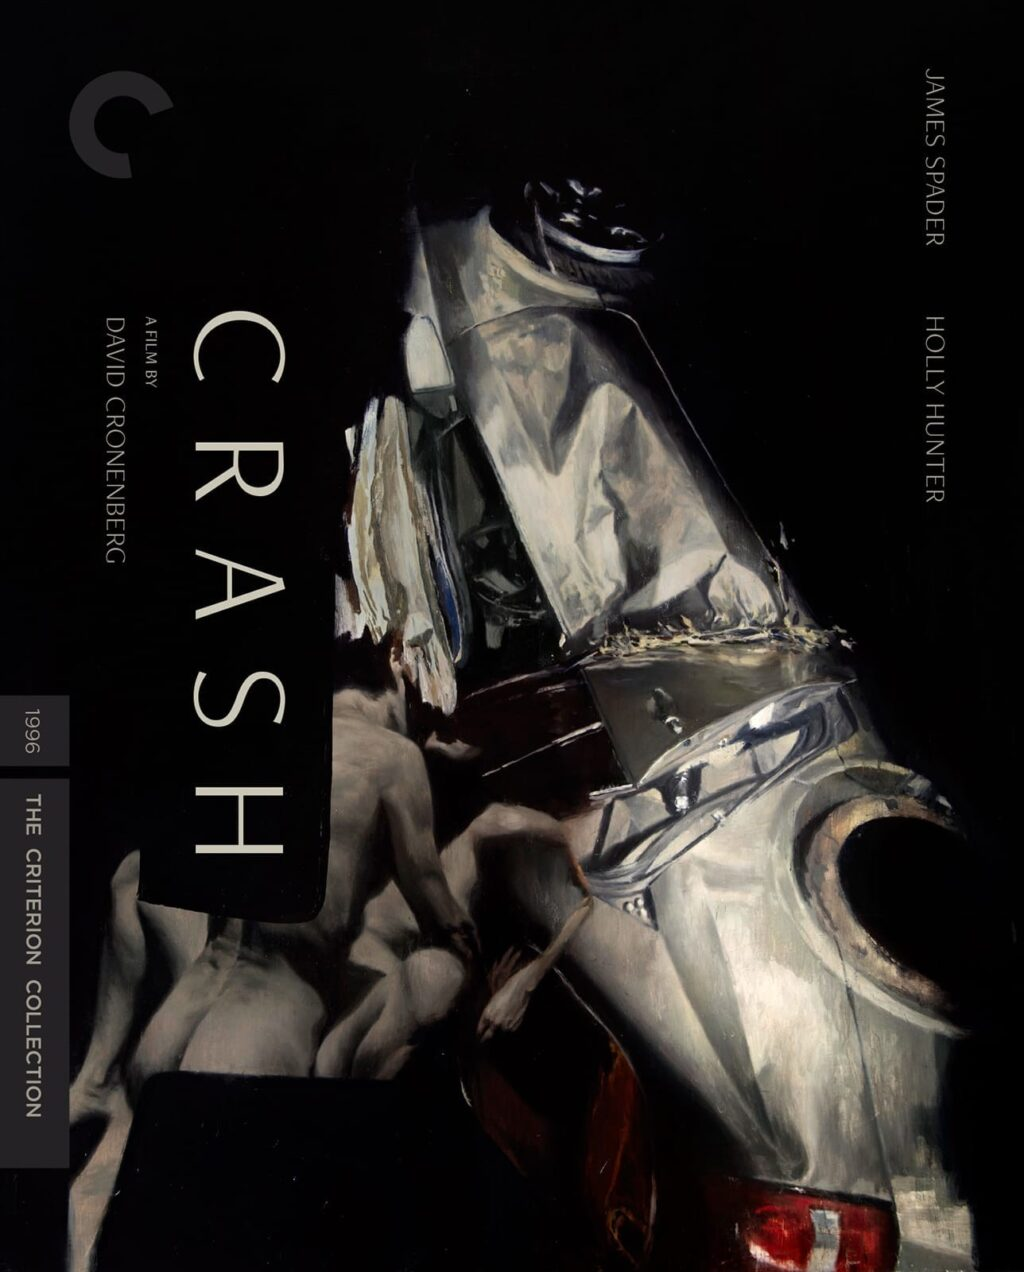 Crash Blu ray The Criterion Collection 1024x1272 - Cronenberg's CRASH Criterion Collection Coming This Christmas